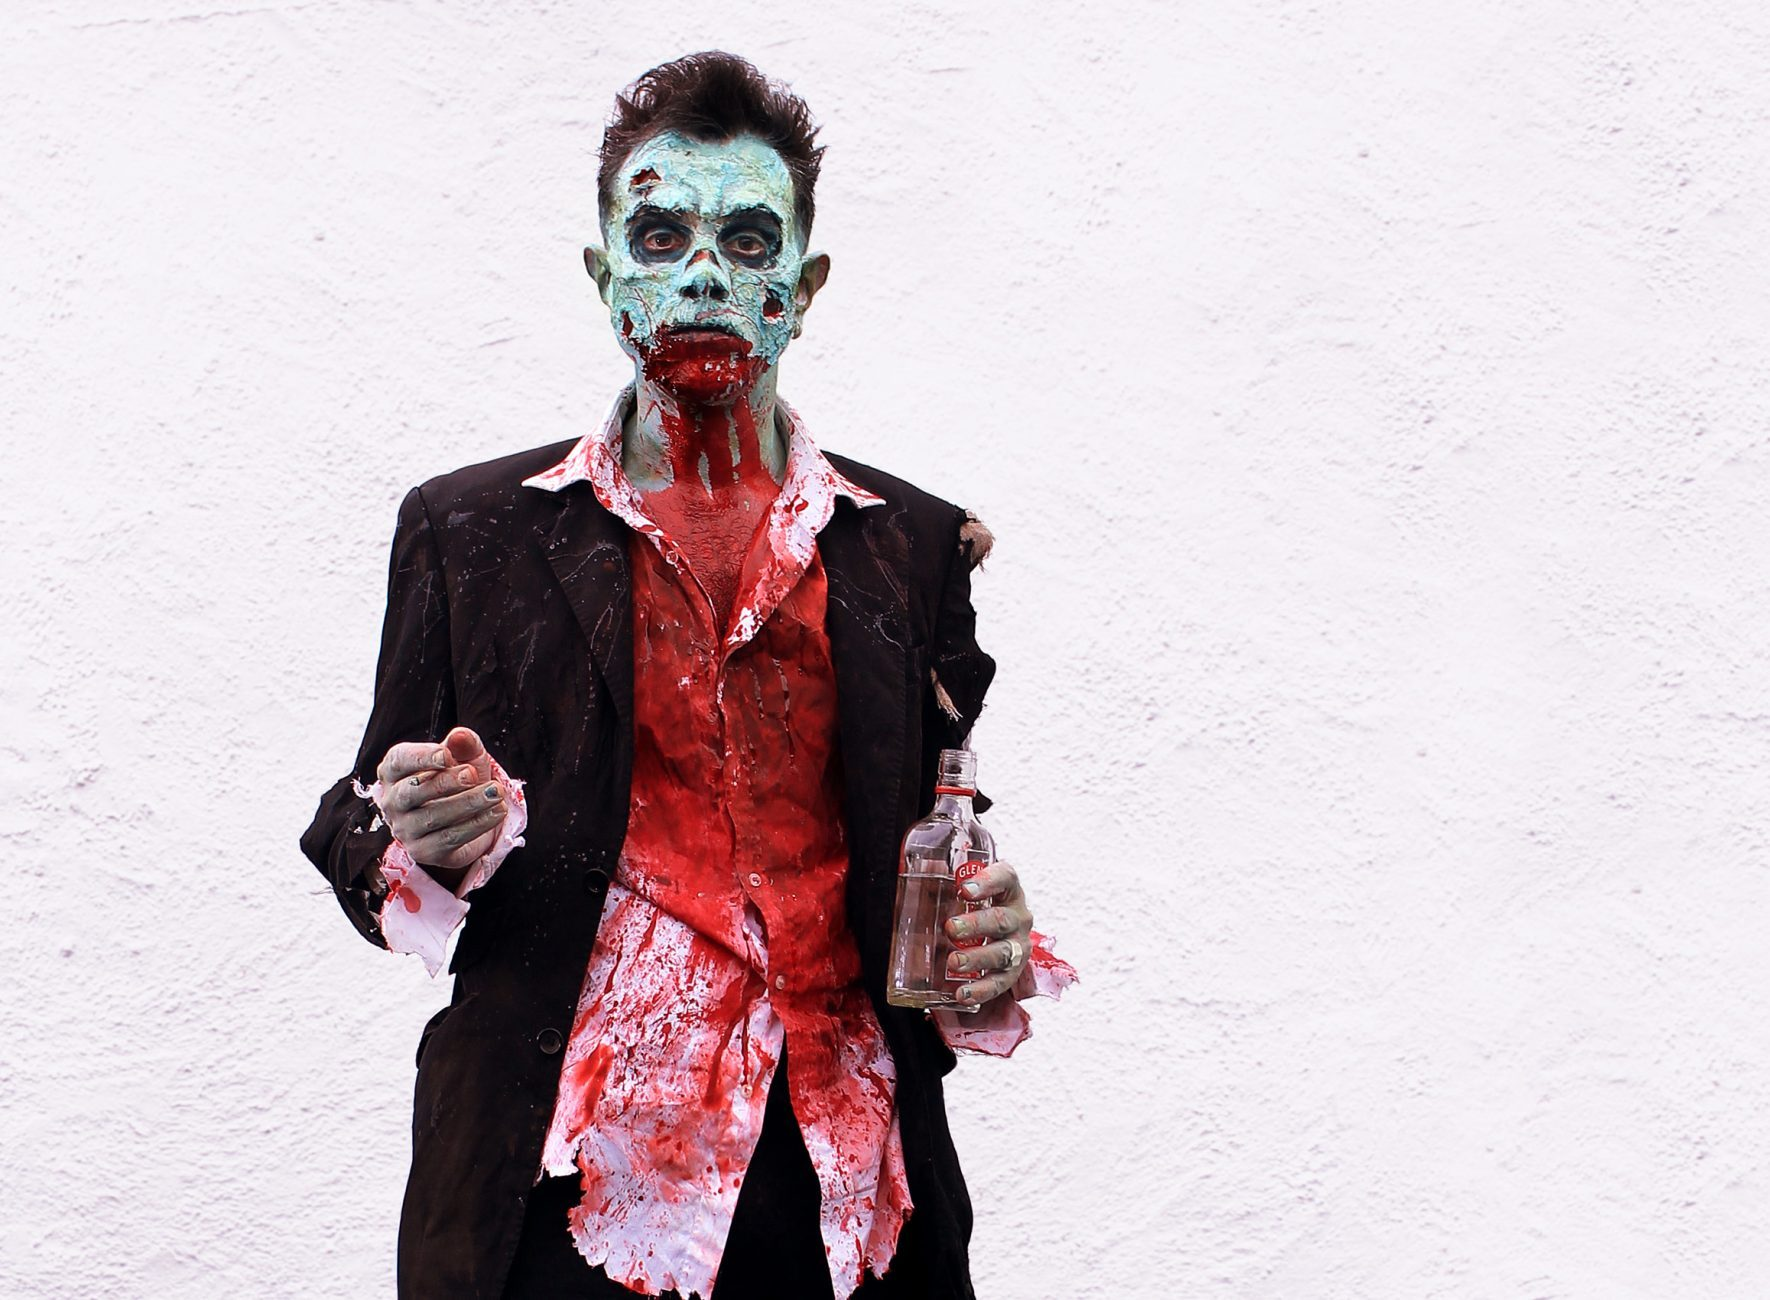 Daniel Roch as a zombie at Brakes film photoshoot ©whatisbobo